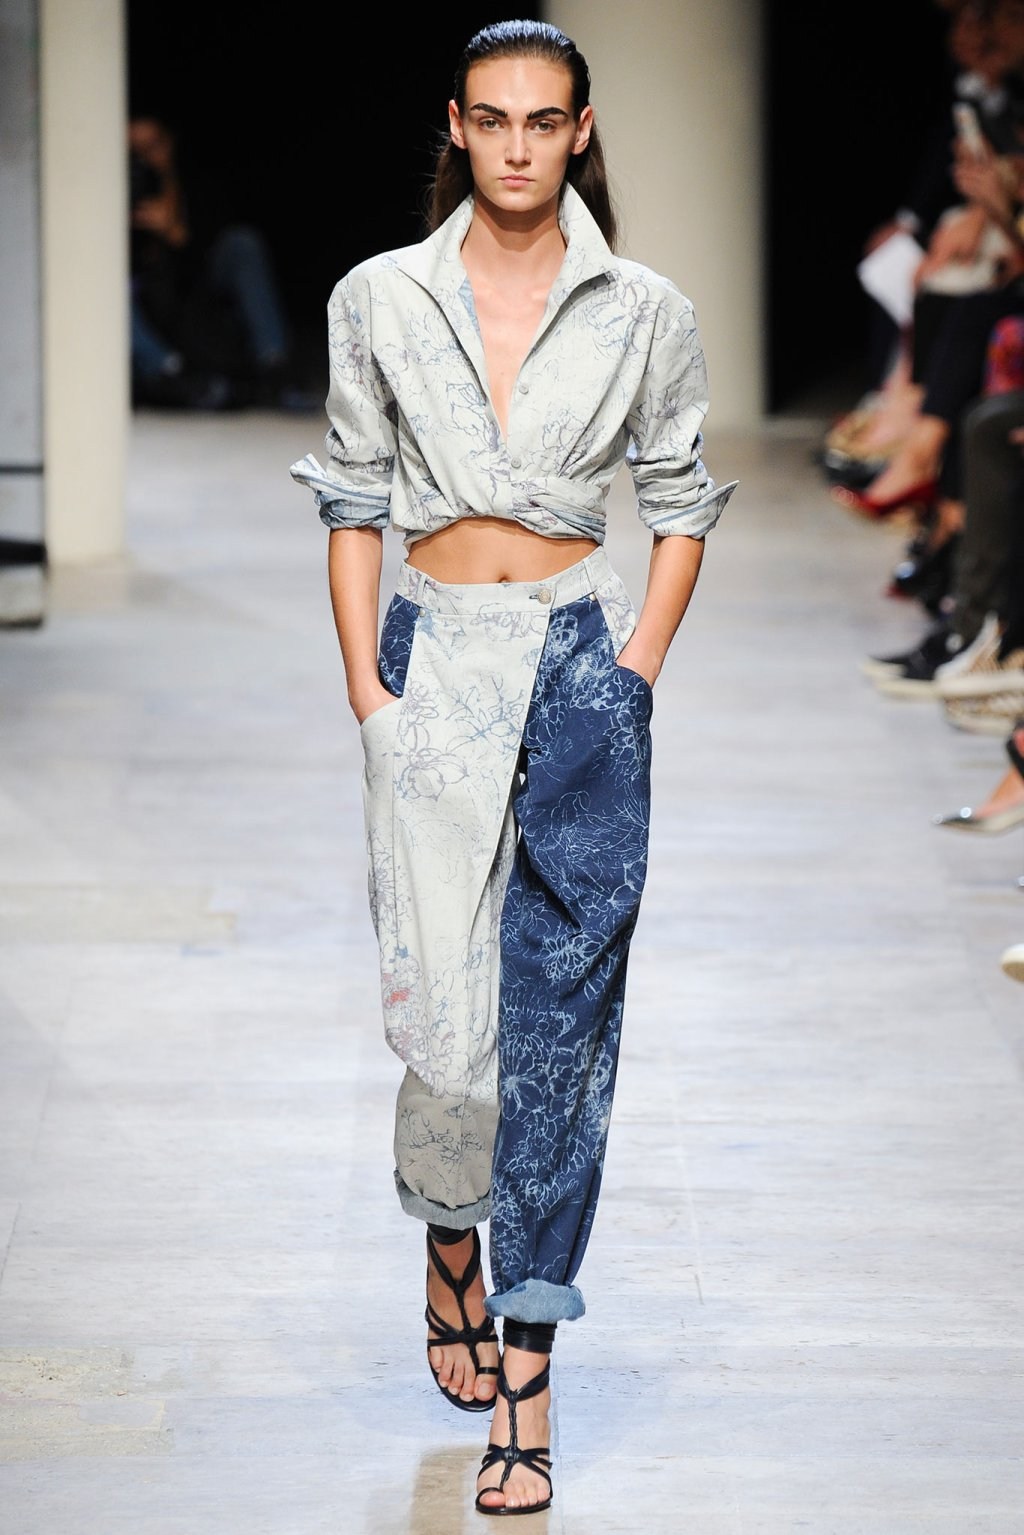 LEONARD DOUBLE DENIM FLORAL MODEL SPRING SUMMER 2015 FASHION WEEK